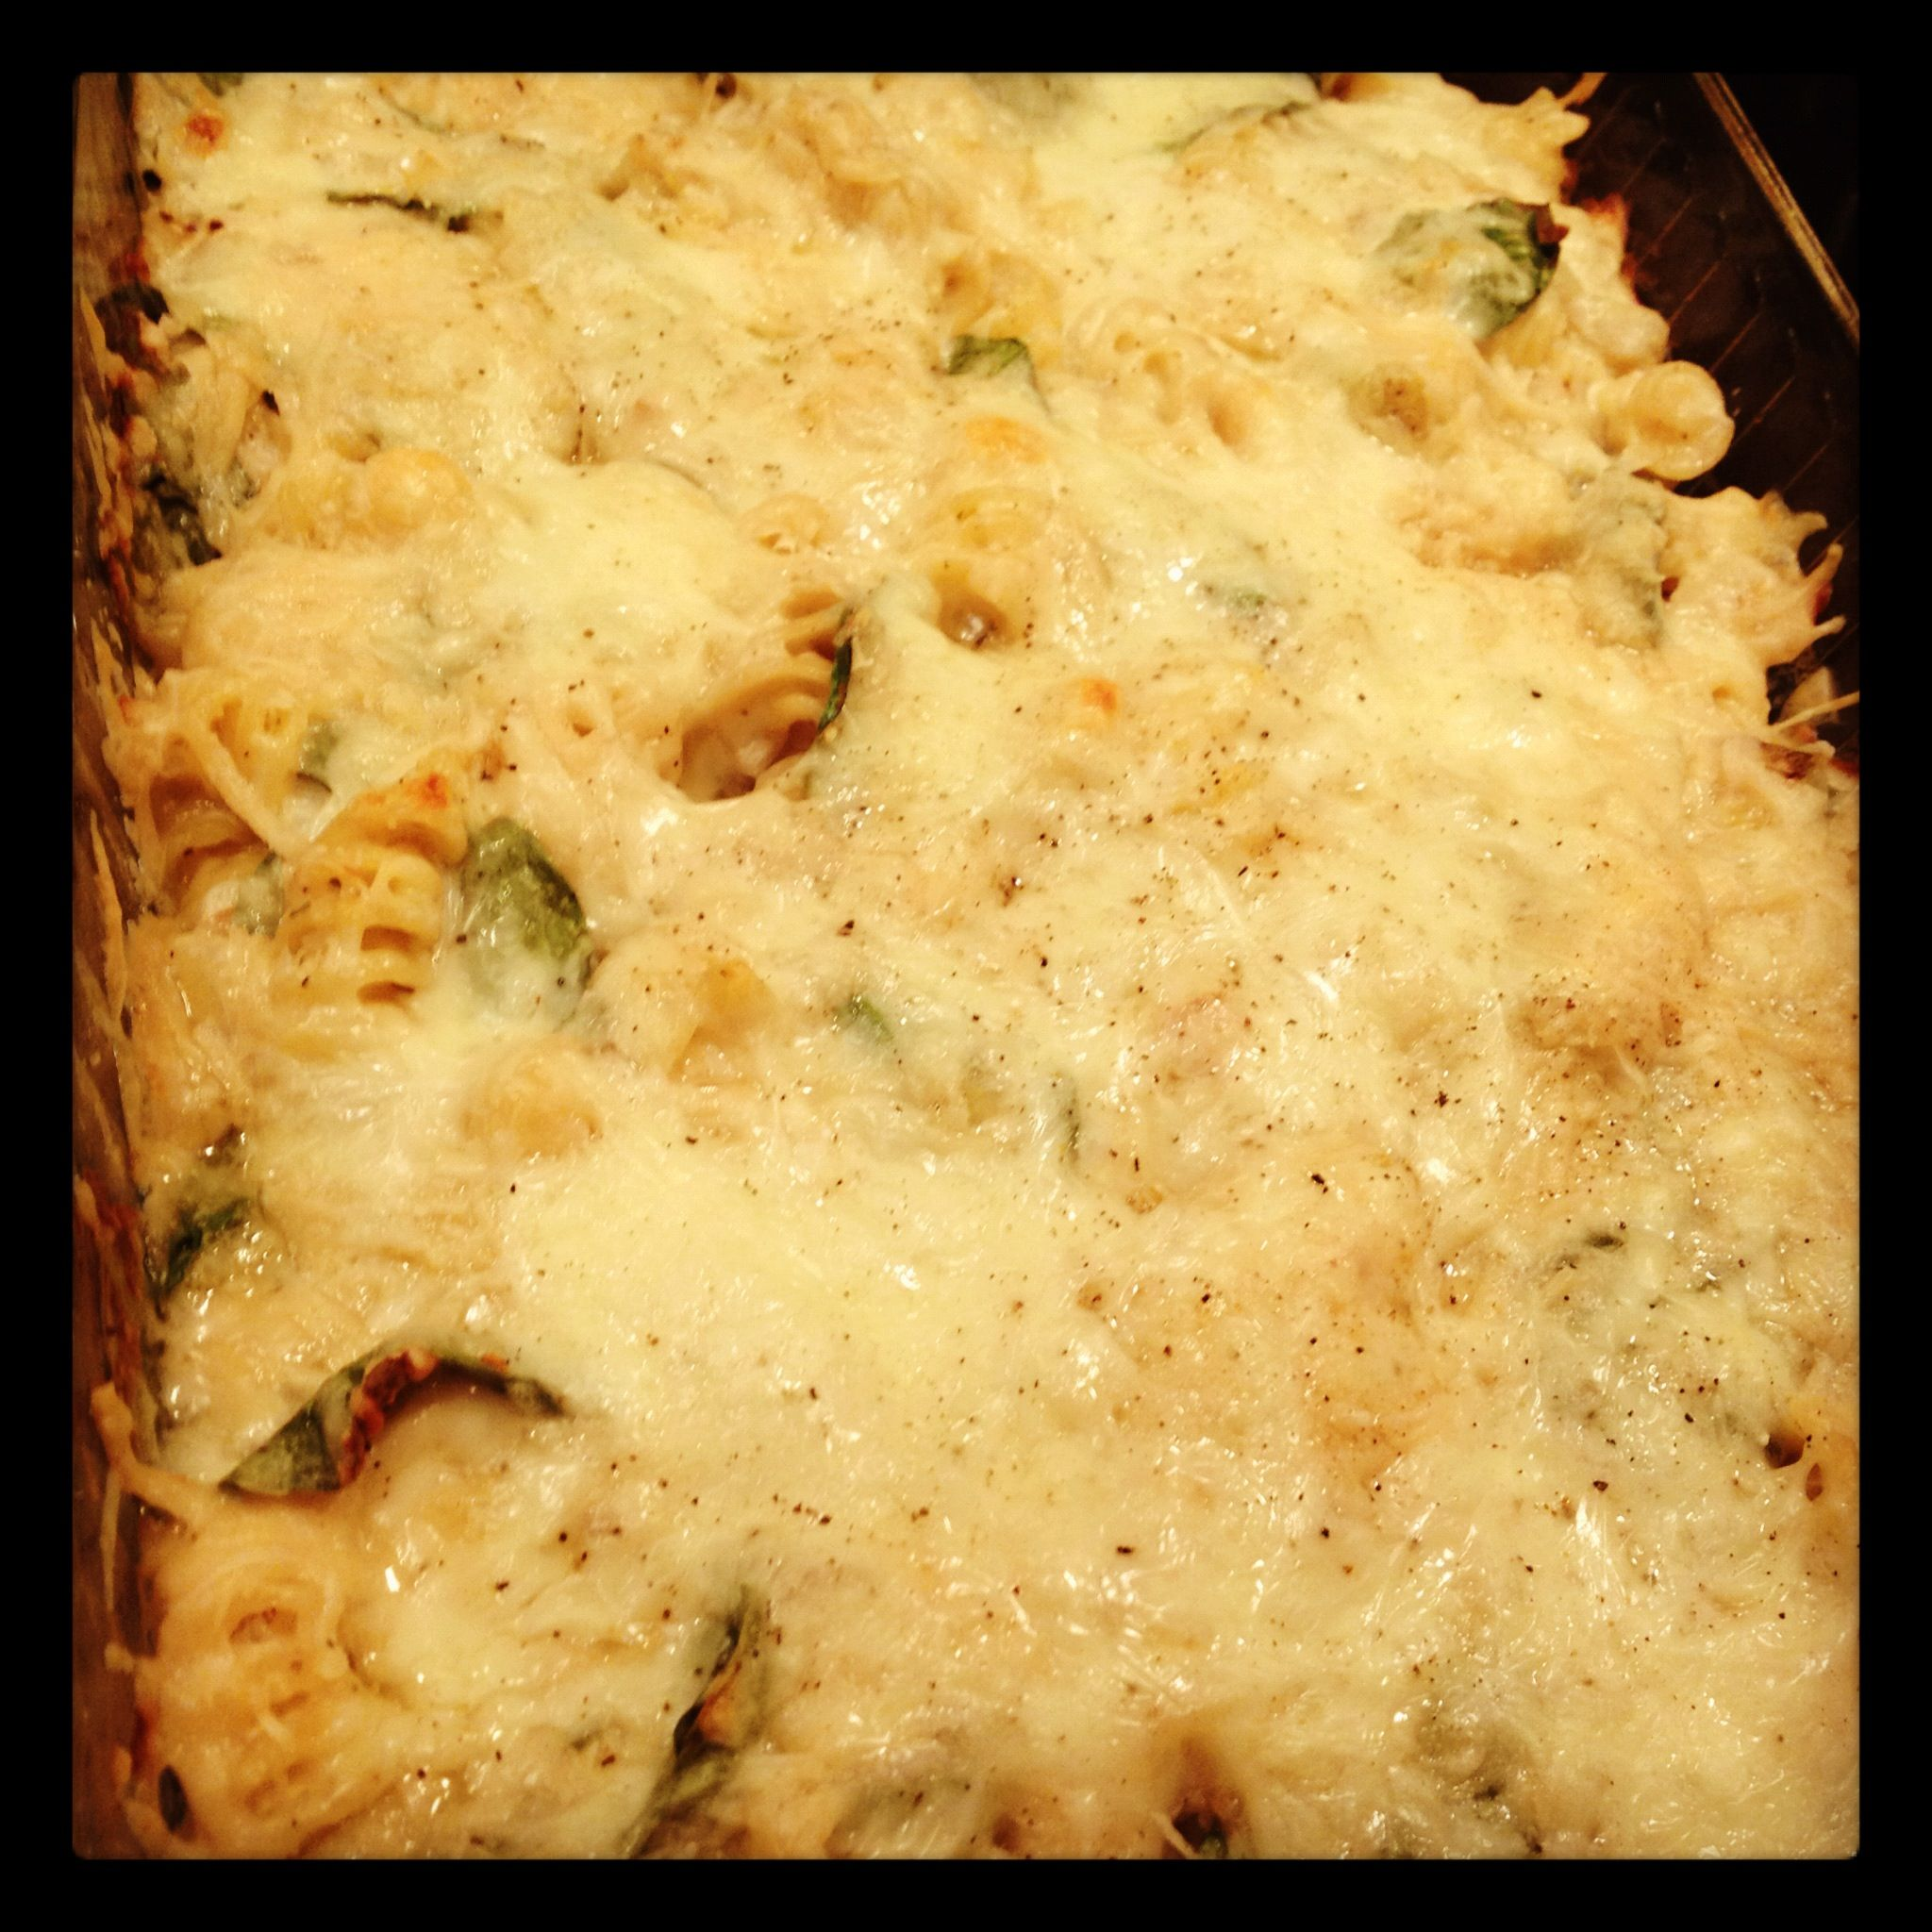 Spinach and Artichoke Baked Pasta -- Sounds tasty.